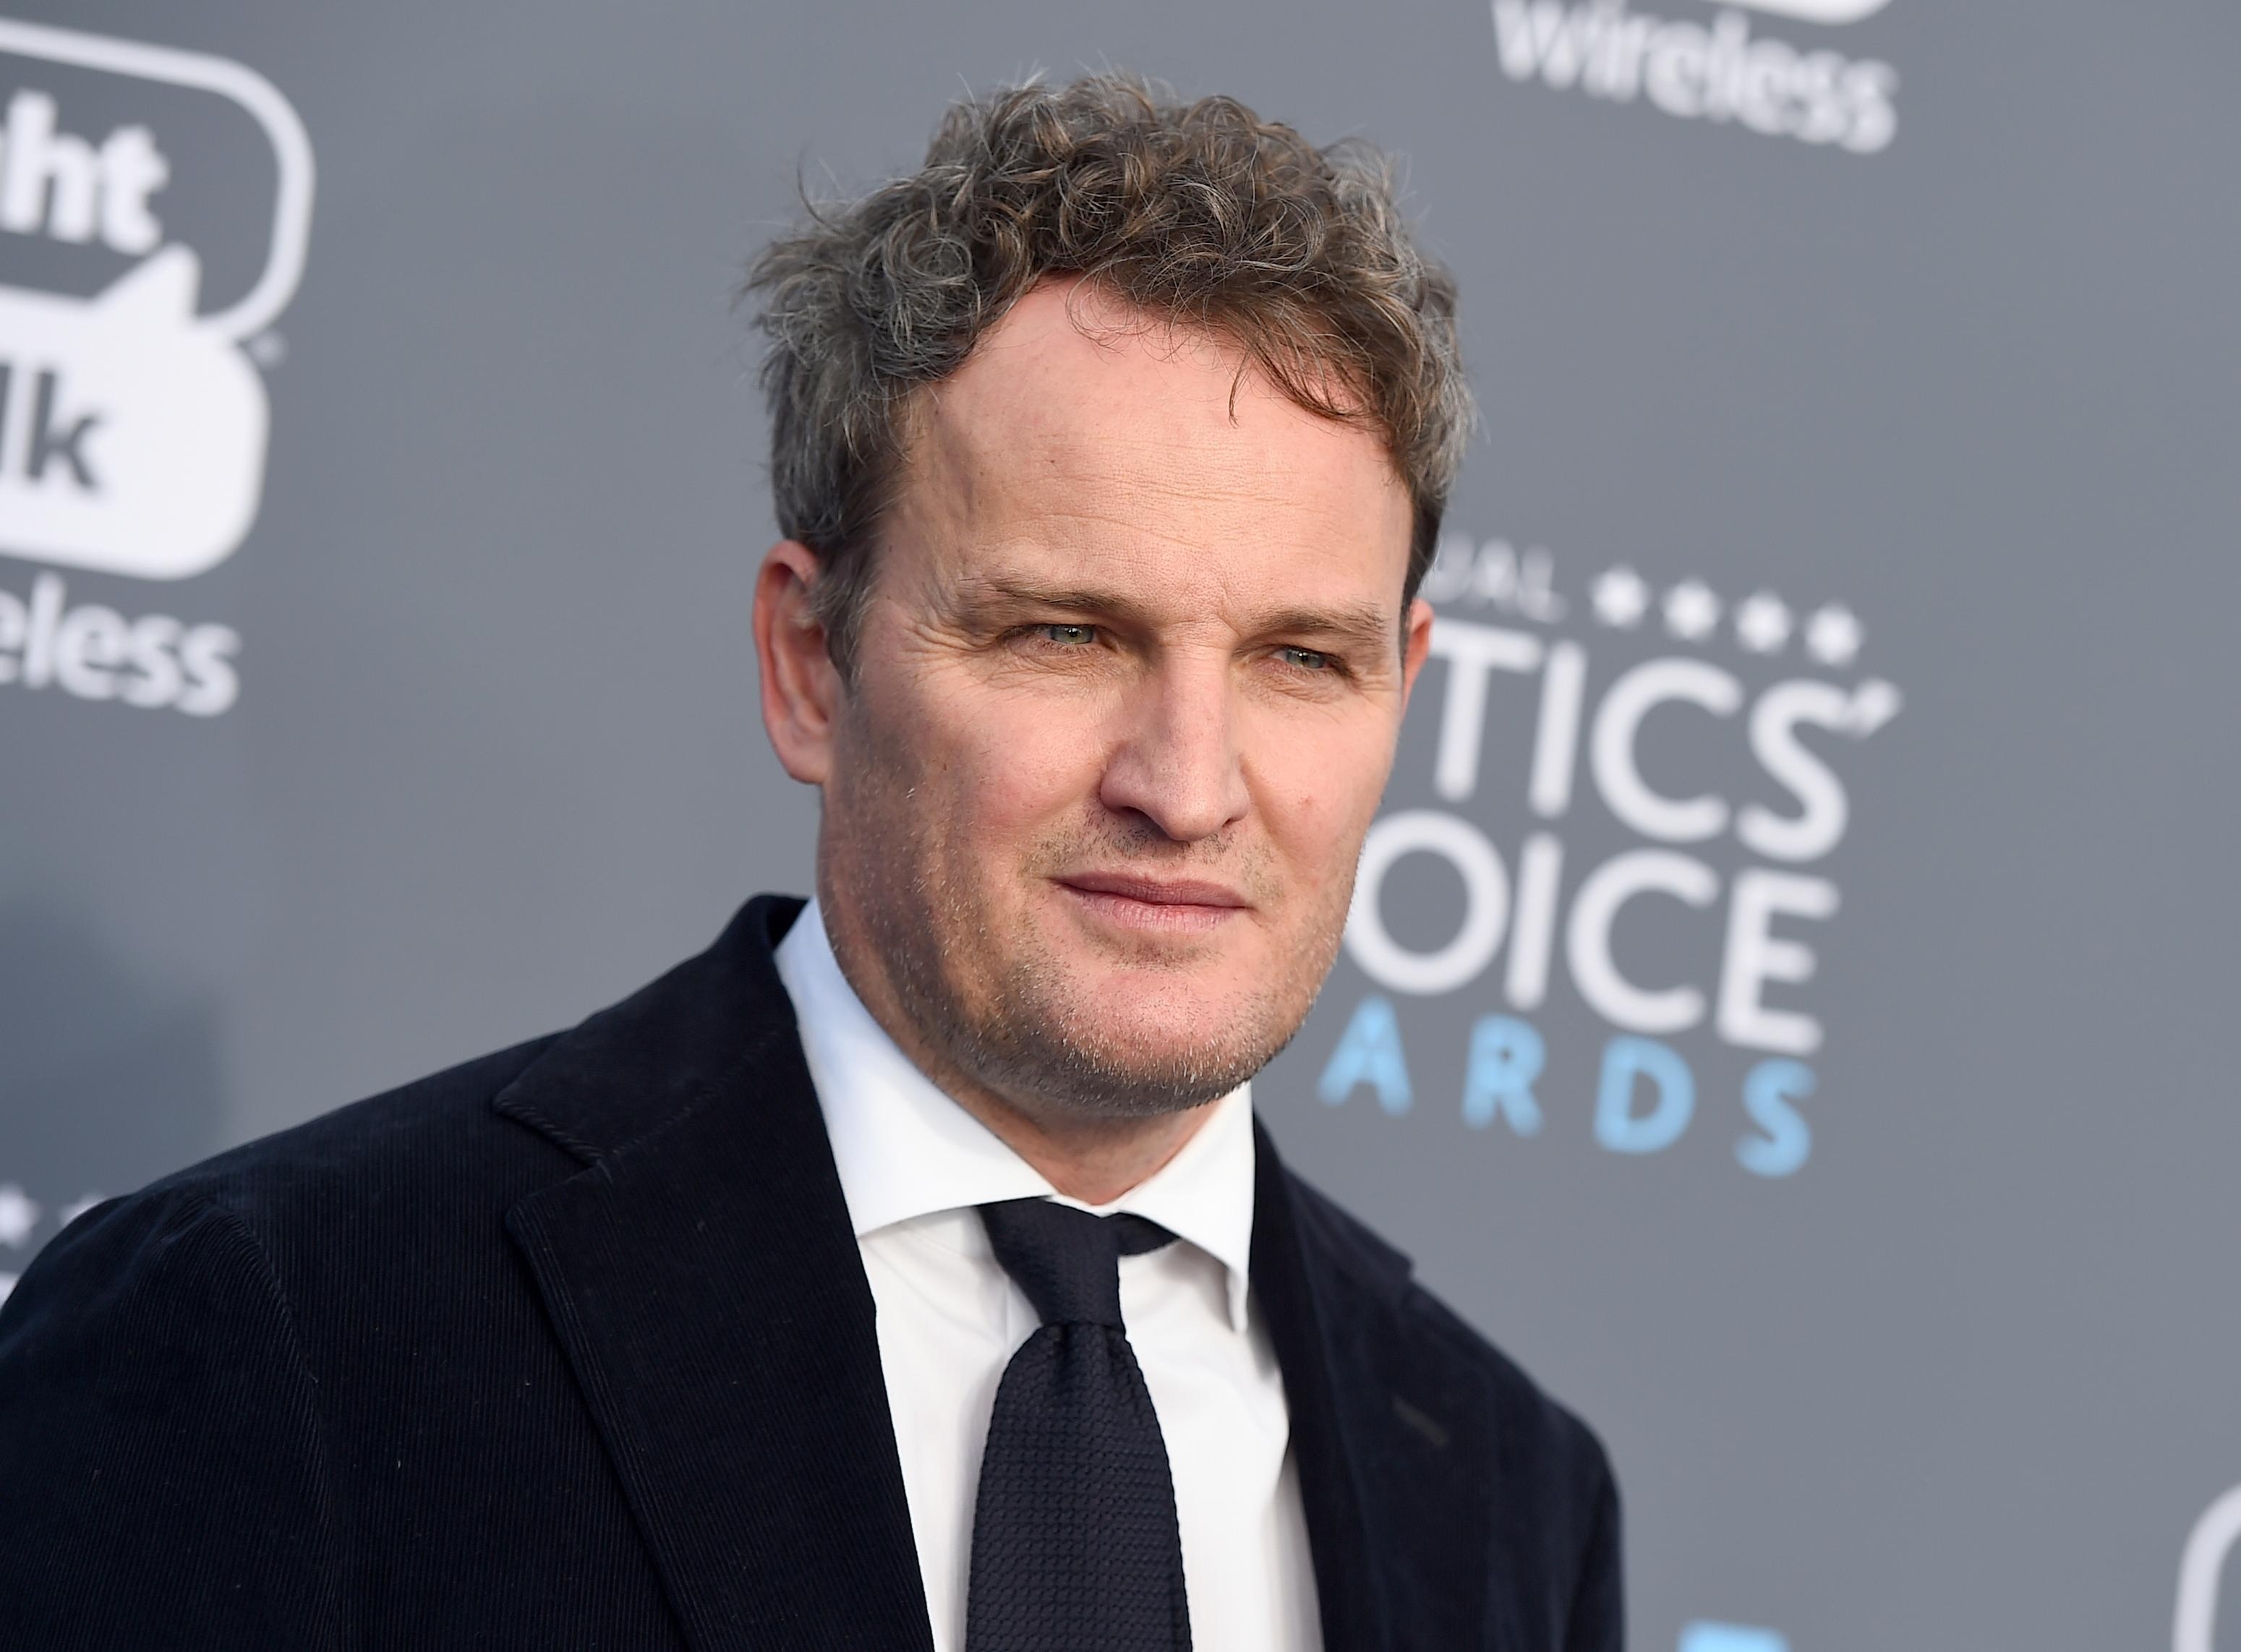 Jason Clarke arrives at the 23rd annual Critics' Choice Awards at the Barker Hangar on Thursday, Jan. 11, 2018, in Santa Monica, Calif. (Photo by Jordan Strauss/Invision/AP)